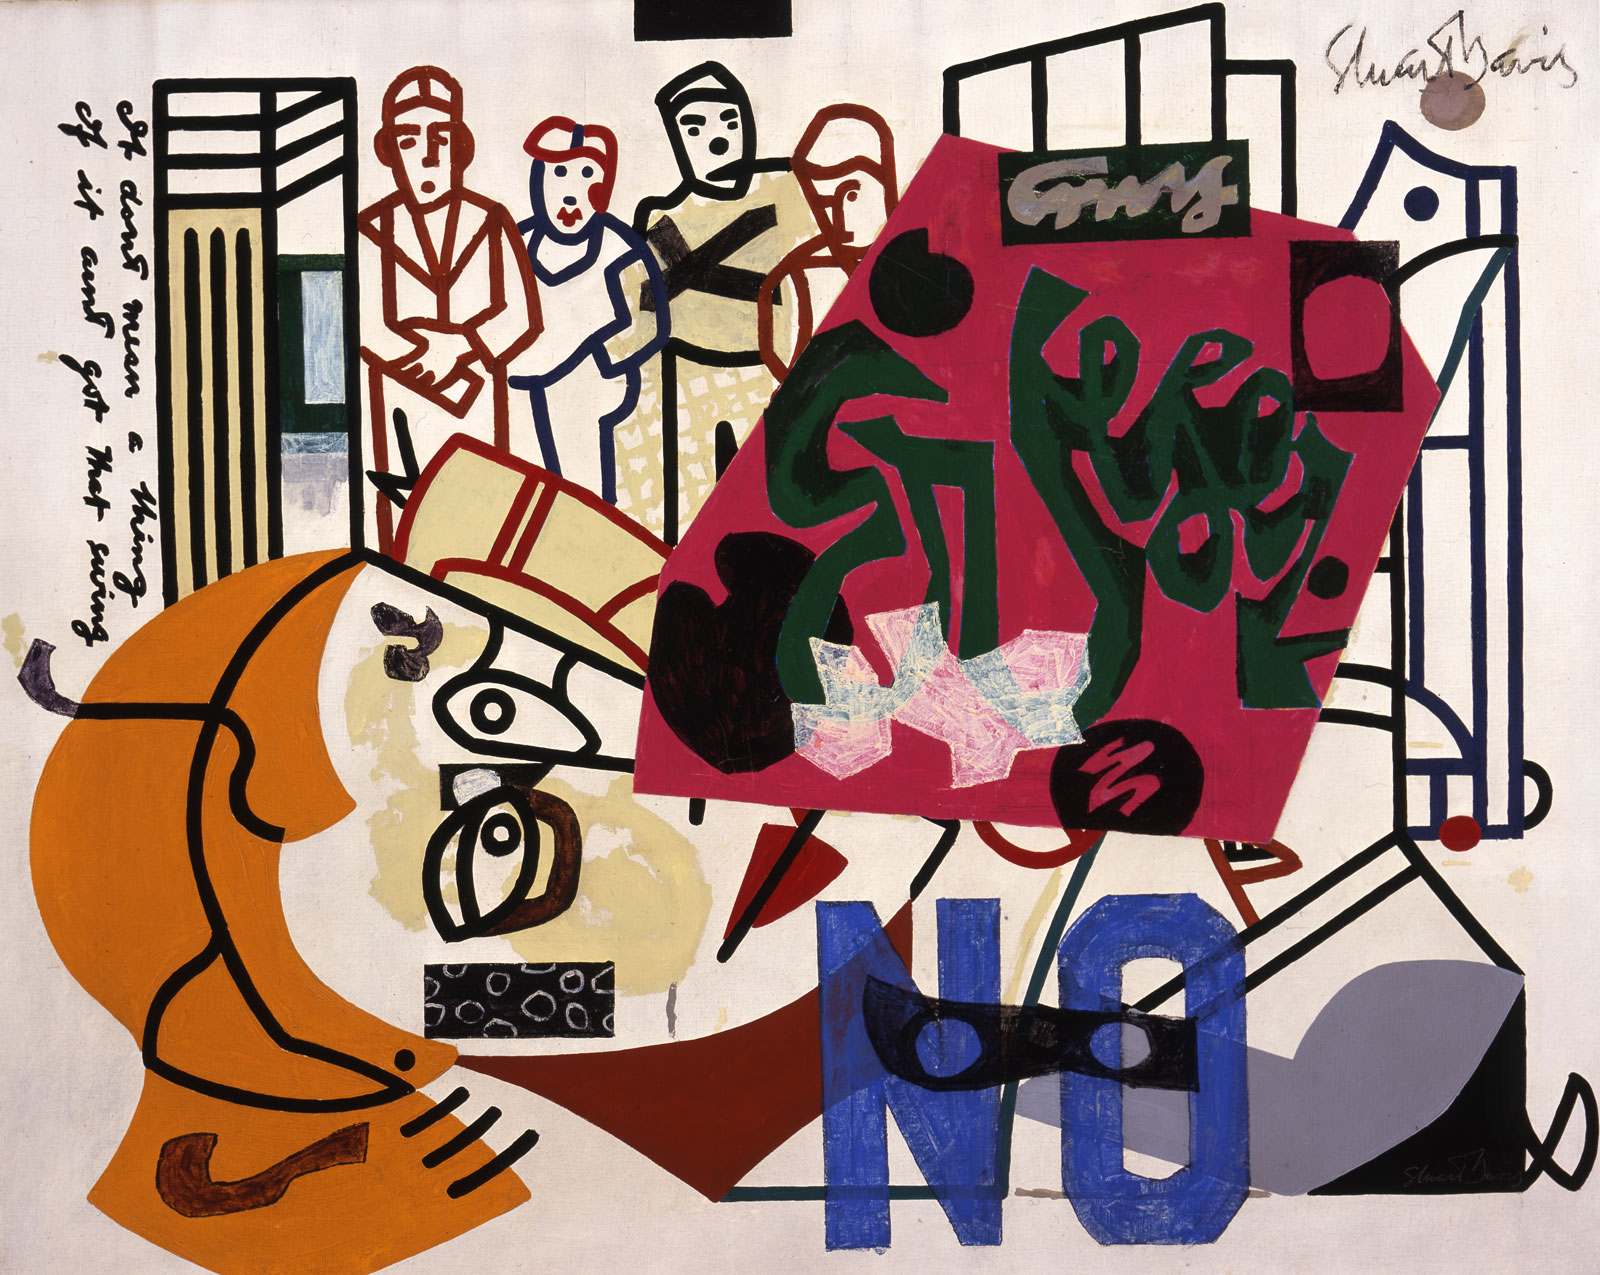 Stuart Davis, American Painting, 1932/1942–1954 (Estate of Stuart Davis/VAGA, New York/Joslyn Art Museum, Omaha)